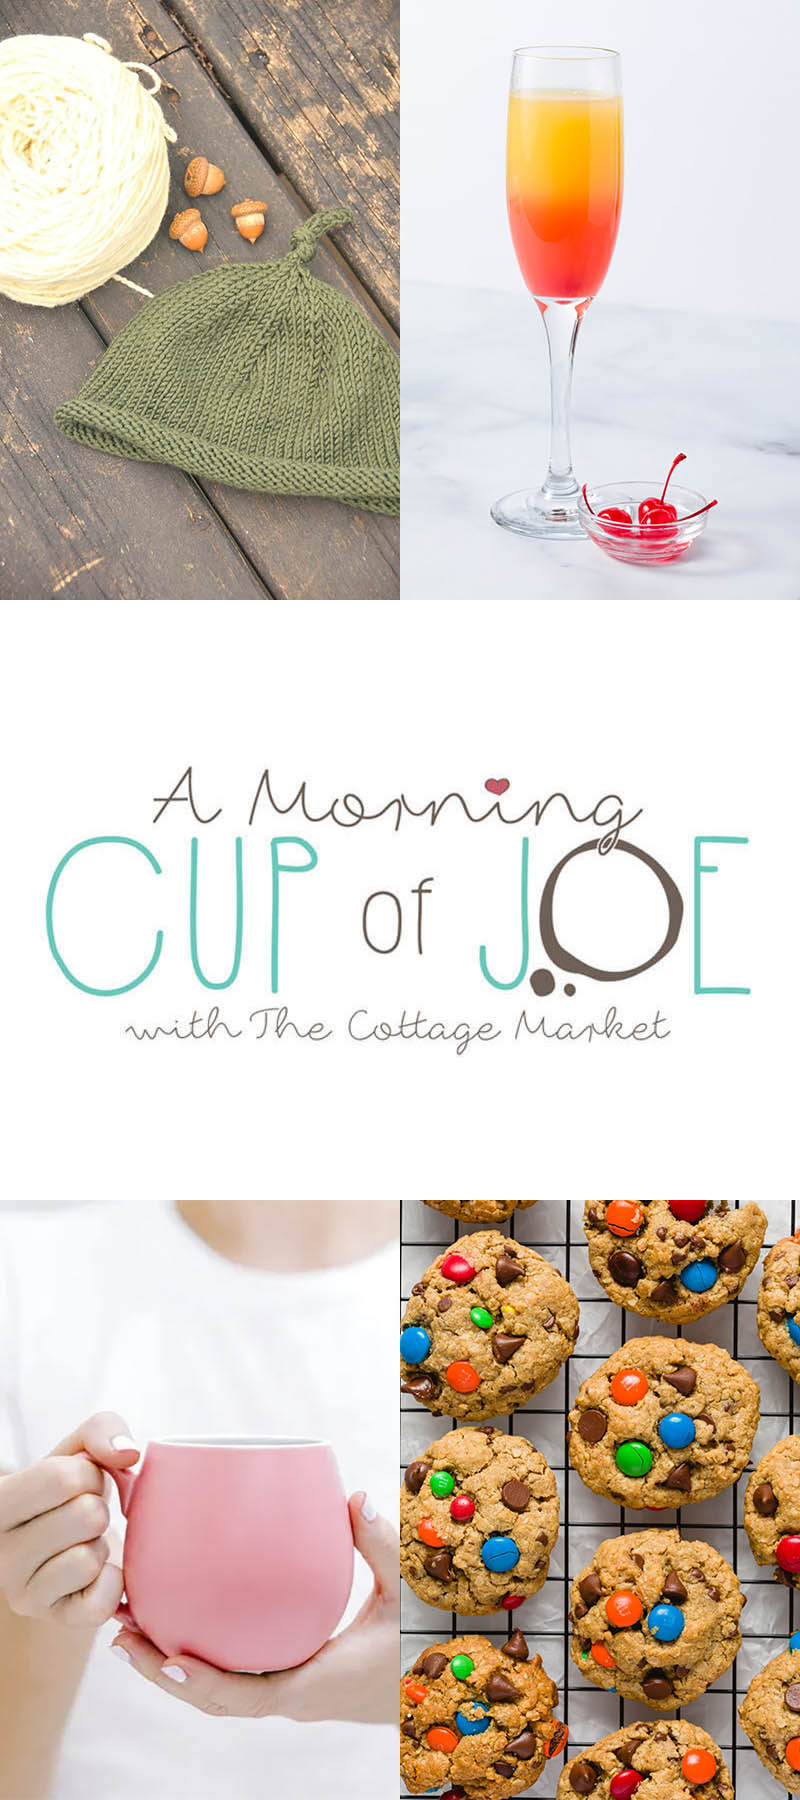 Enjoy A Morning Cup Of Joe Linky Party with DIY Features! Come and enjoy some wonderful features... check out new items on the party then share your creations!